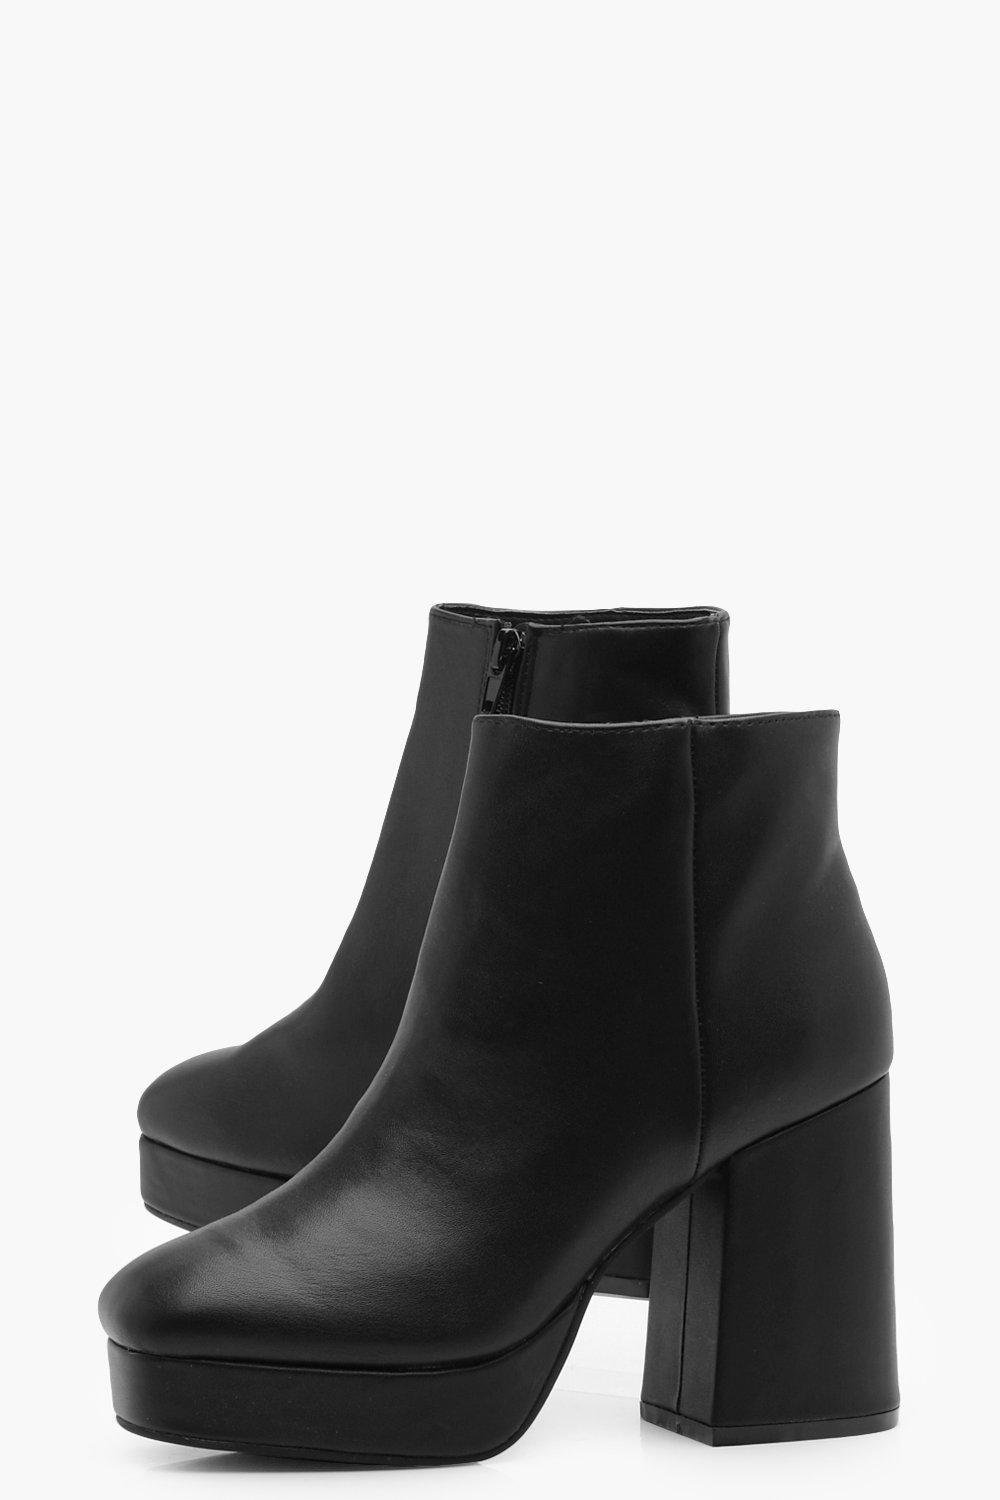 Boohoo Synthetic Platform Block Heel Ankle Boots in Black